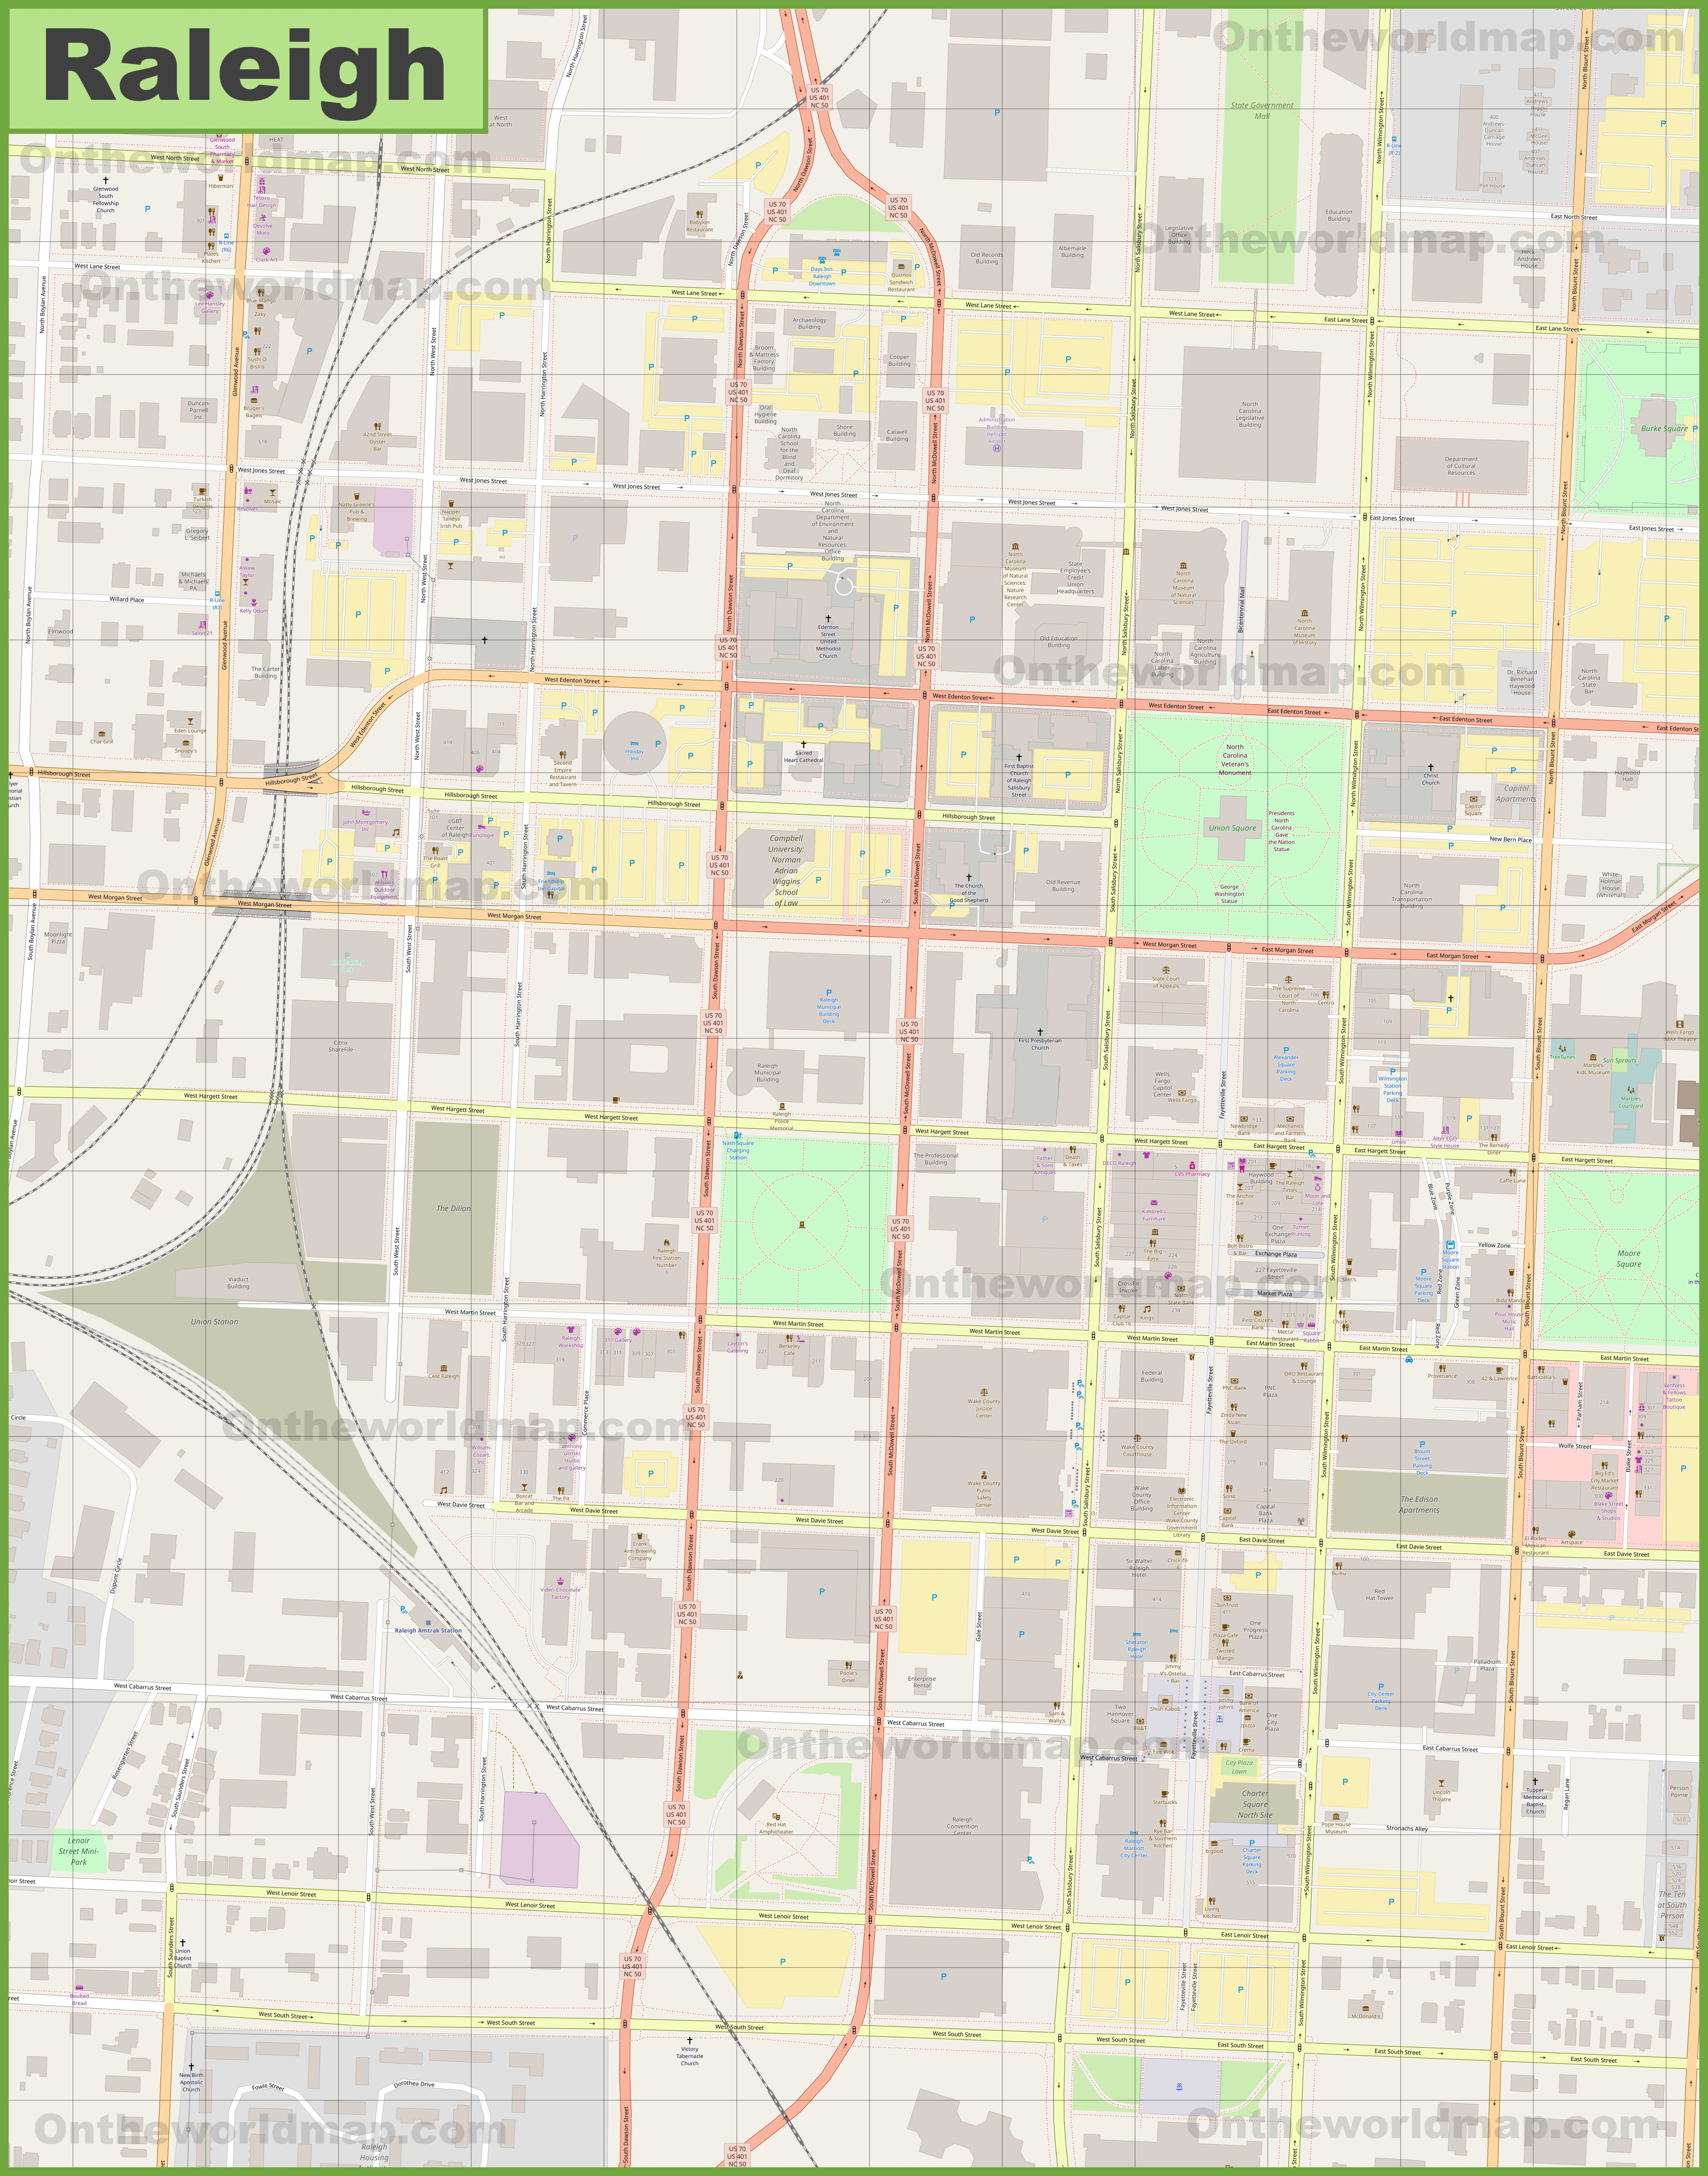 Raleigh downtown map